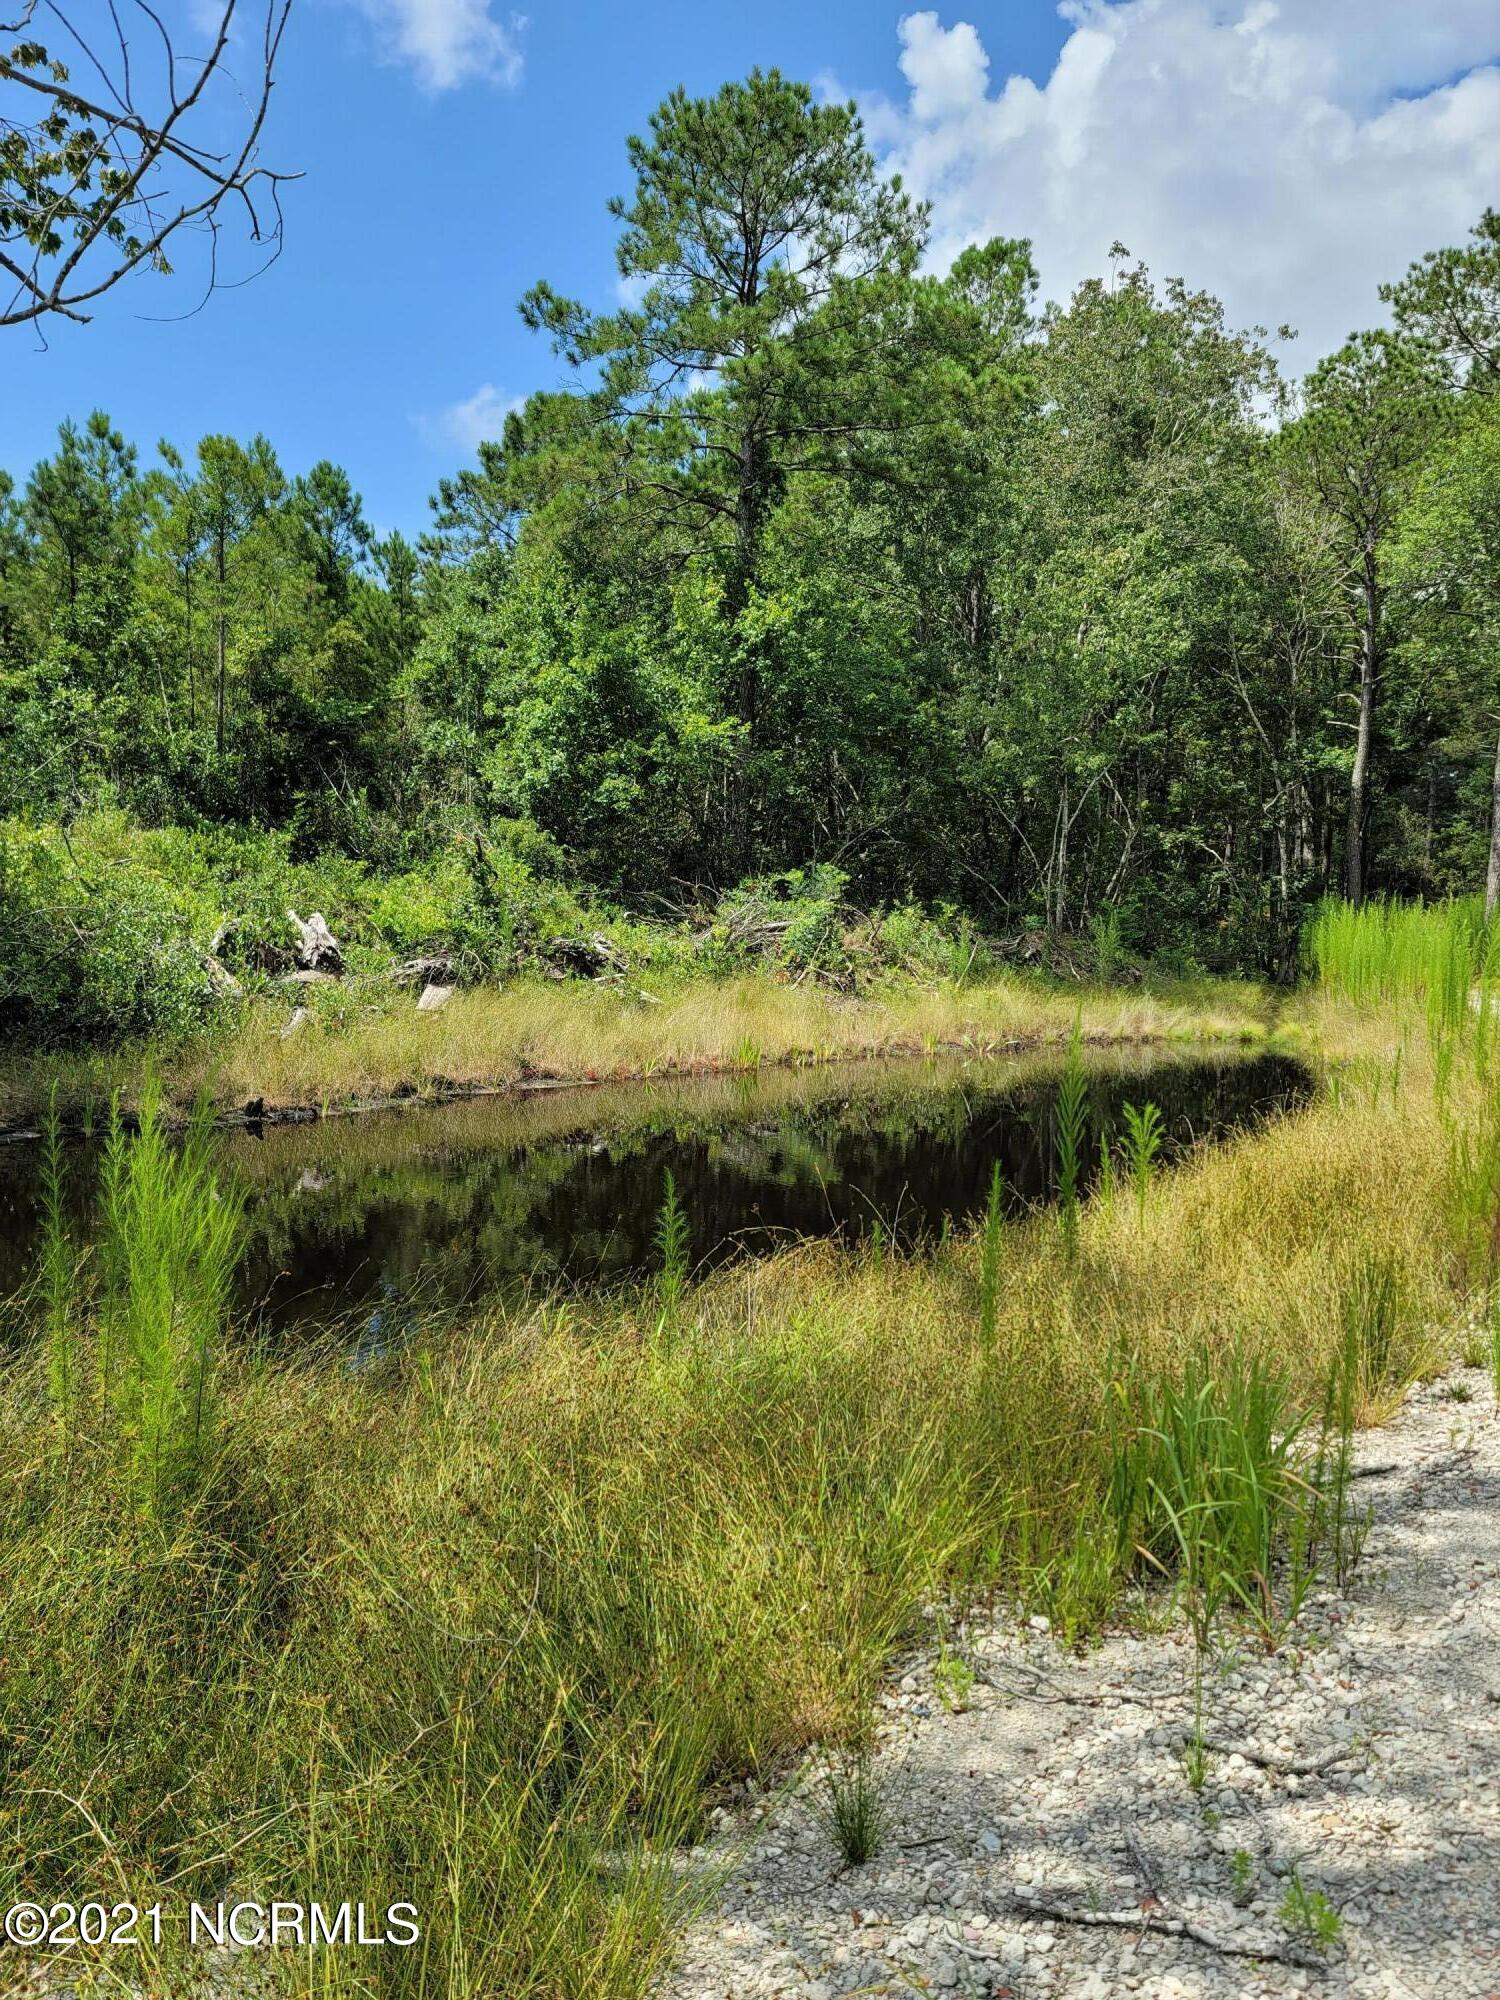 Looking for a lot in the woods with ponds? Check out this lot to see if its secluded enough for you! The lot behind and adjoining this one is available also. So you could have a larger lot/acreage! There are some deed restrictions and a preliminary soil tests.